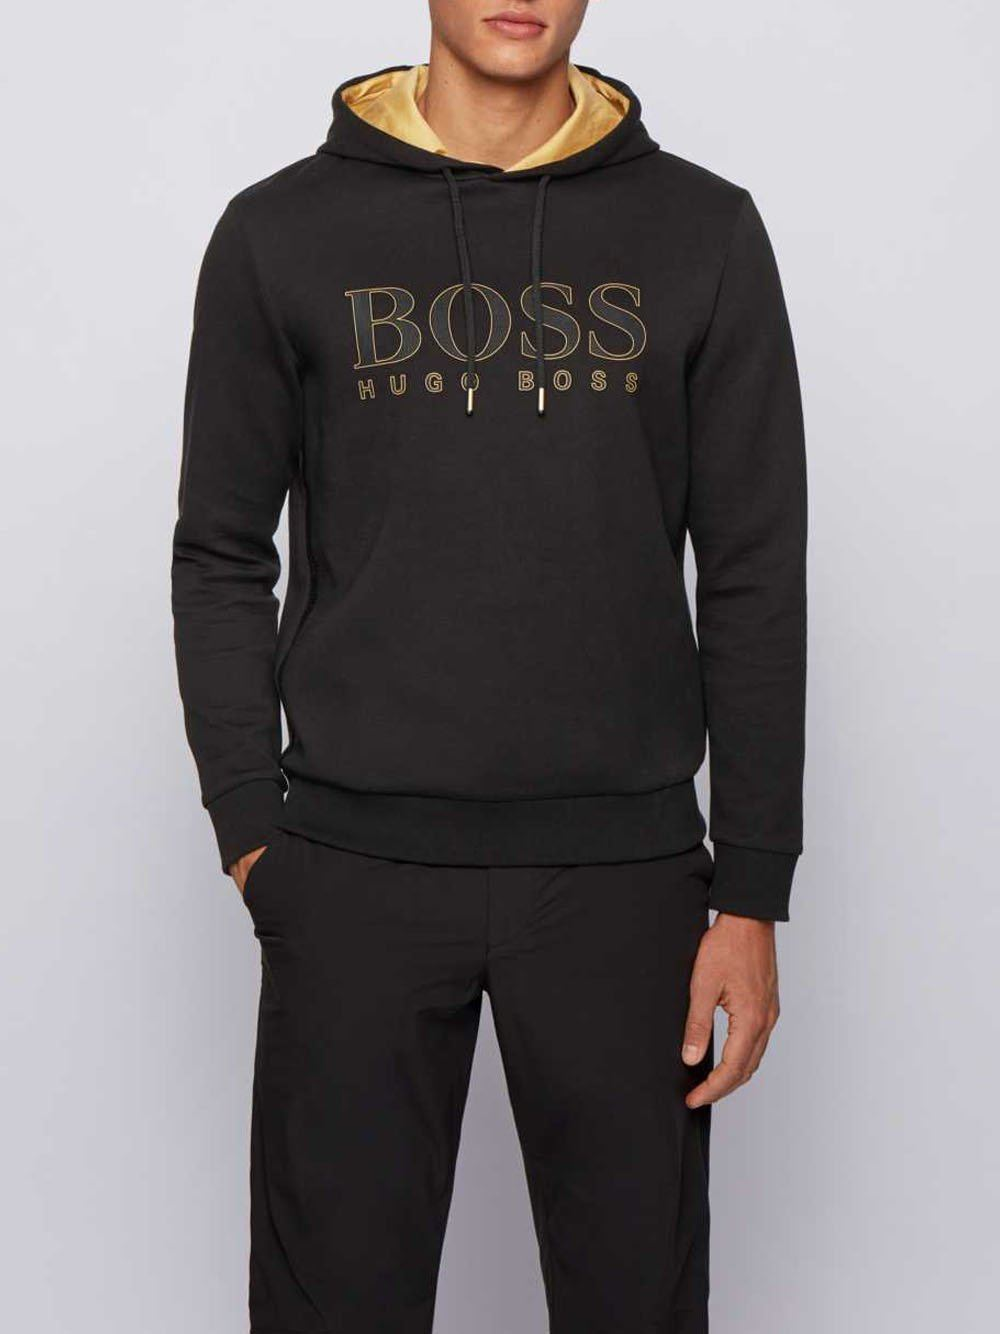 BOSS Logo Sweatshirt with Gold Lining Black